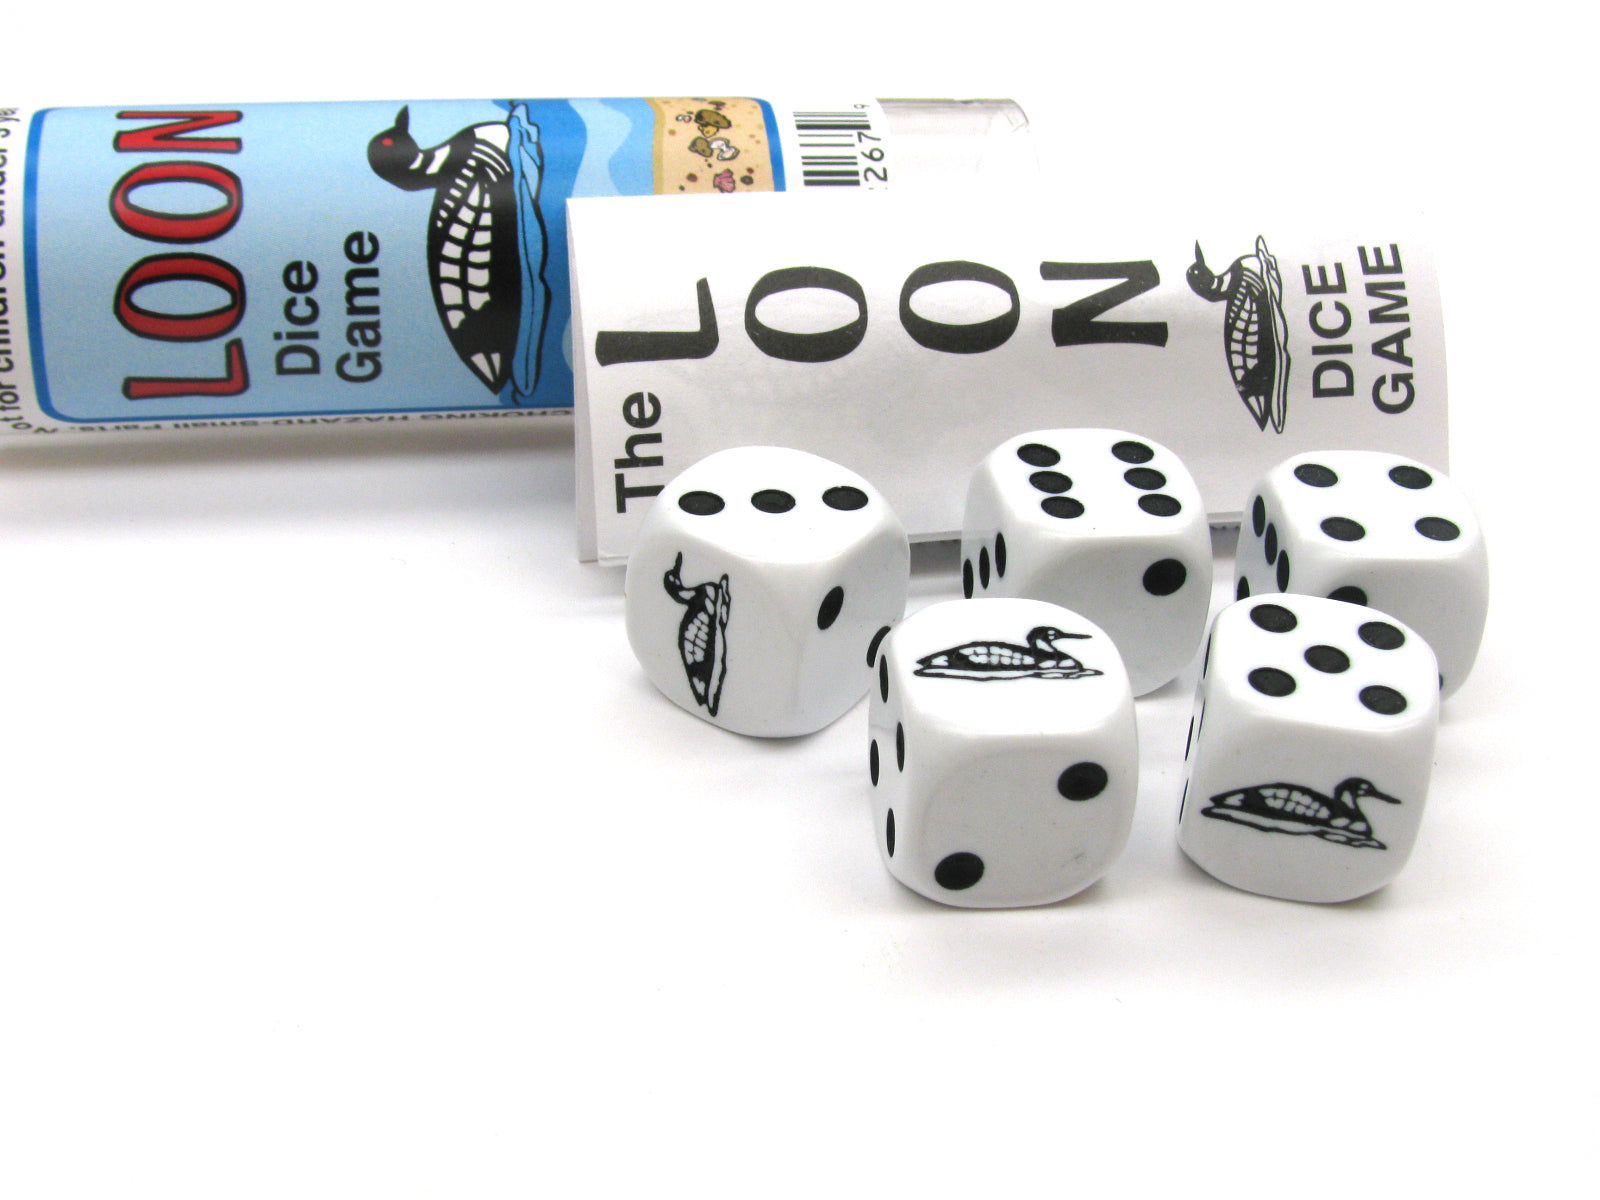 Loon Dice Game 5 Dice Set with Travel Tube and Instructions